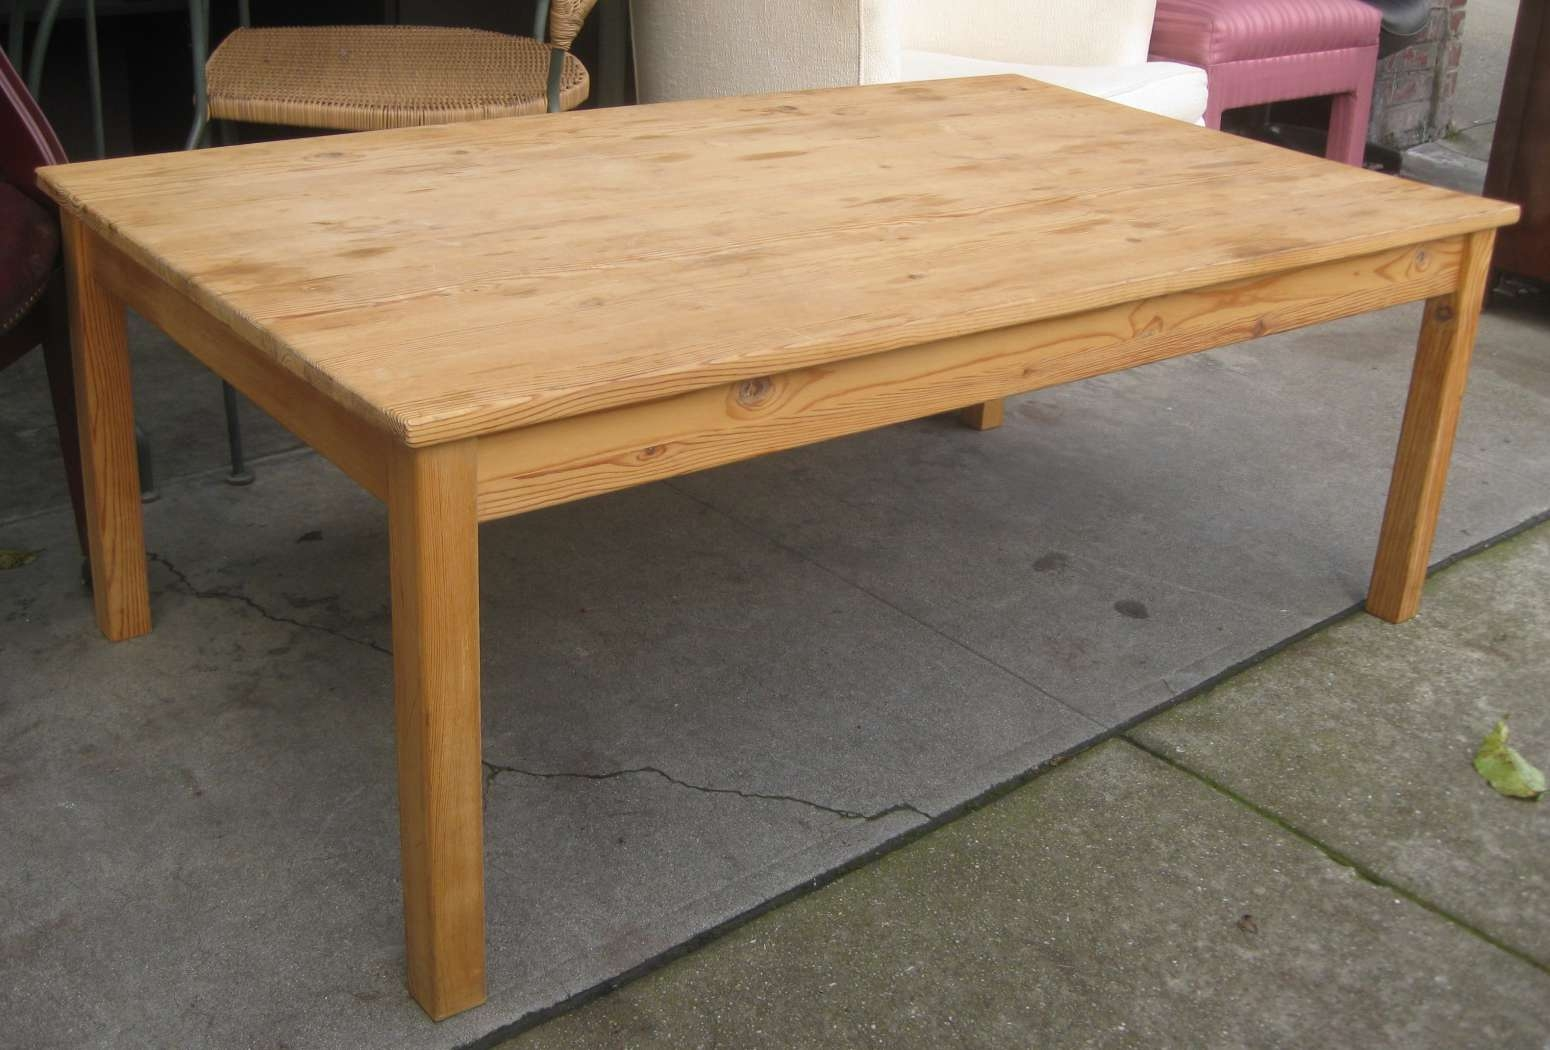 Uhuru Furniture & Collectibles: Sold – Pine Coffee Table – $25 Pertaining To Widely Used Pine Coffee Tables (View 9 of 20)